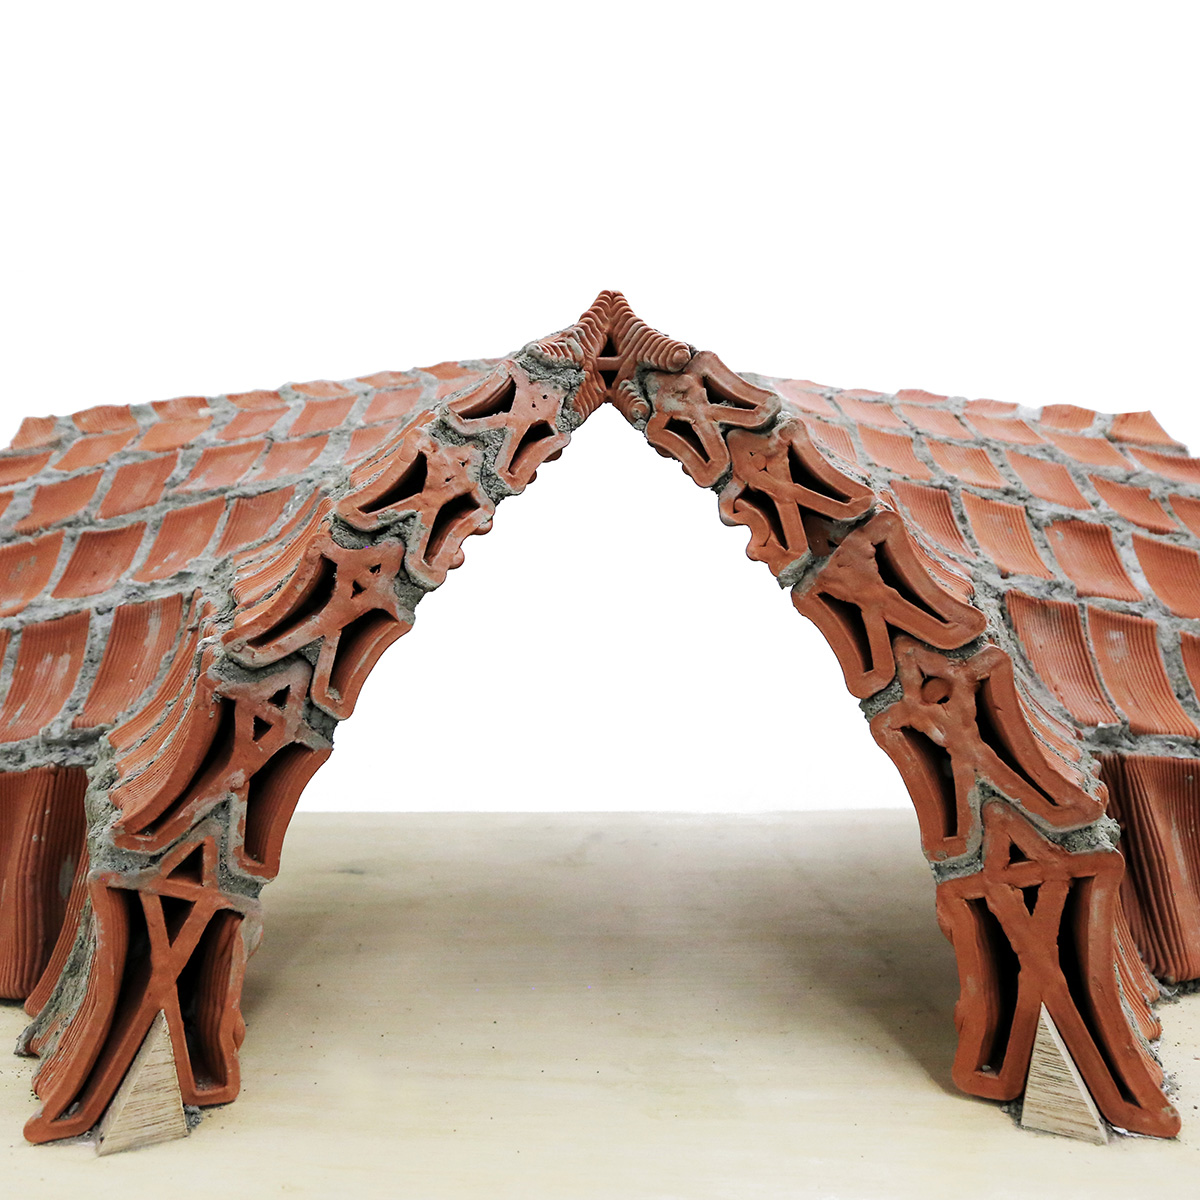 In Compression, autobrickformation, Christian J Lange, Faculty of Architecture, HKU, Brick Specials